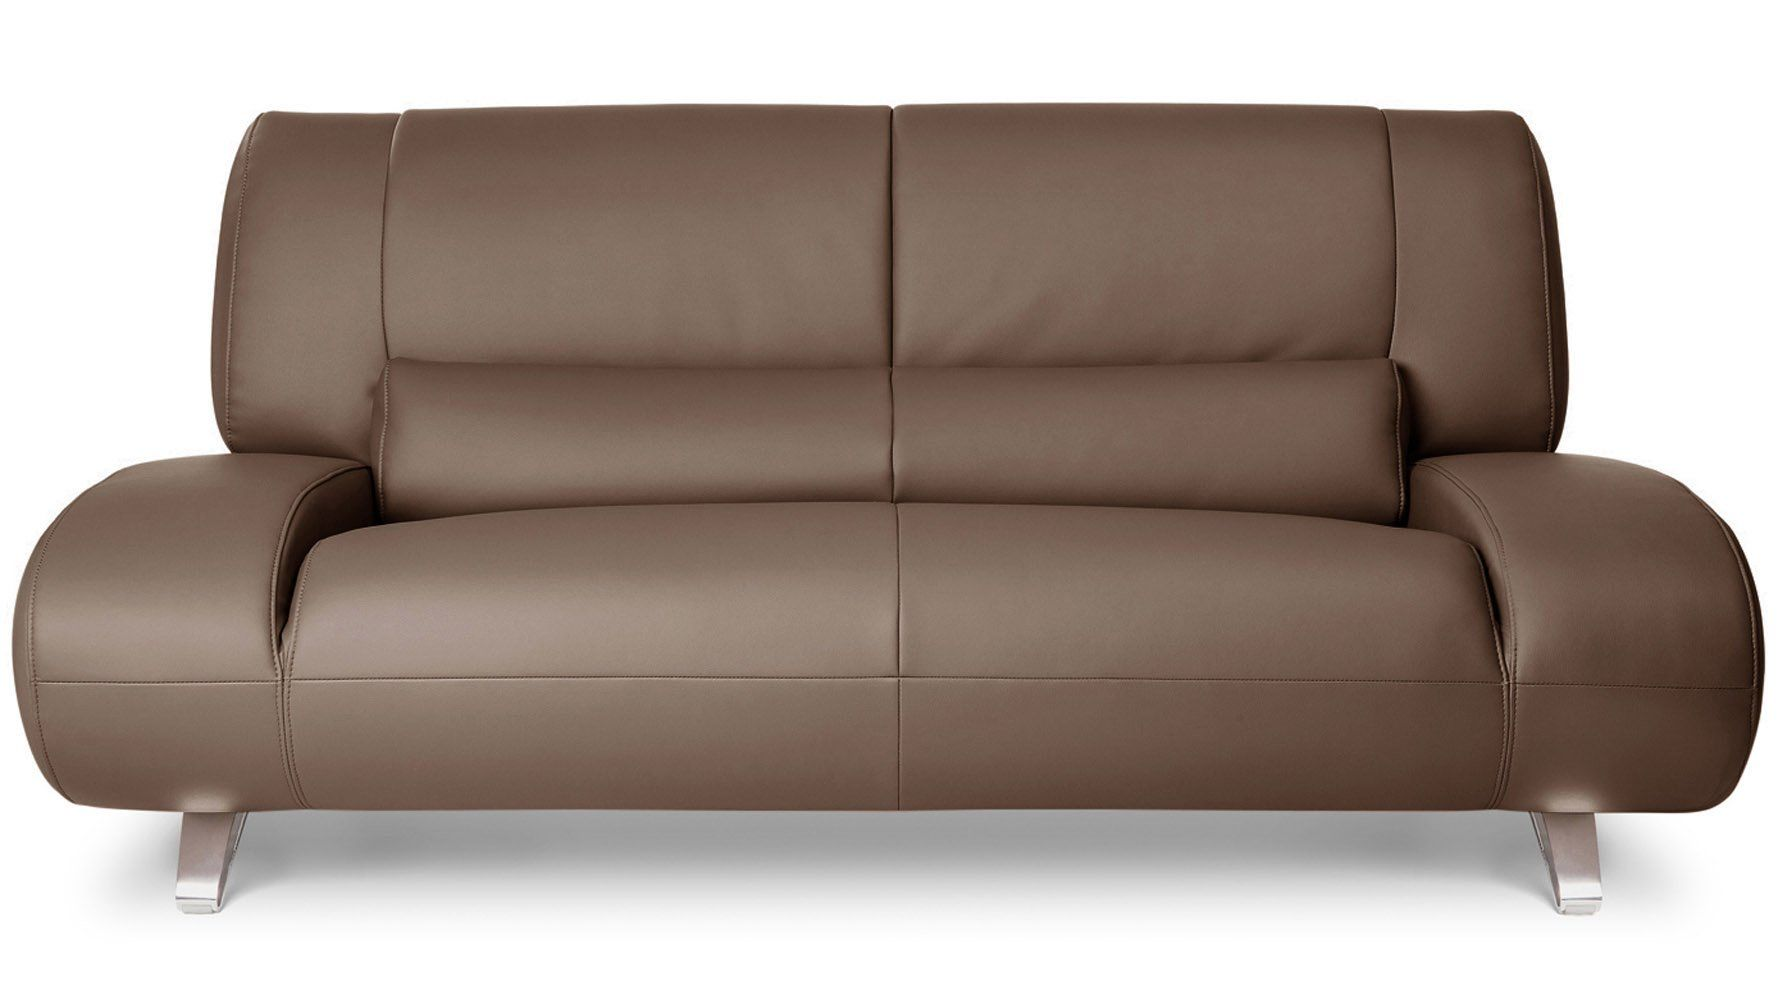 Zuri Furniture Brown Aspen Leather Loveseat Gt Gt Gt Be Sure To